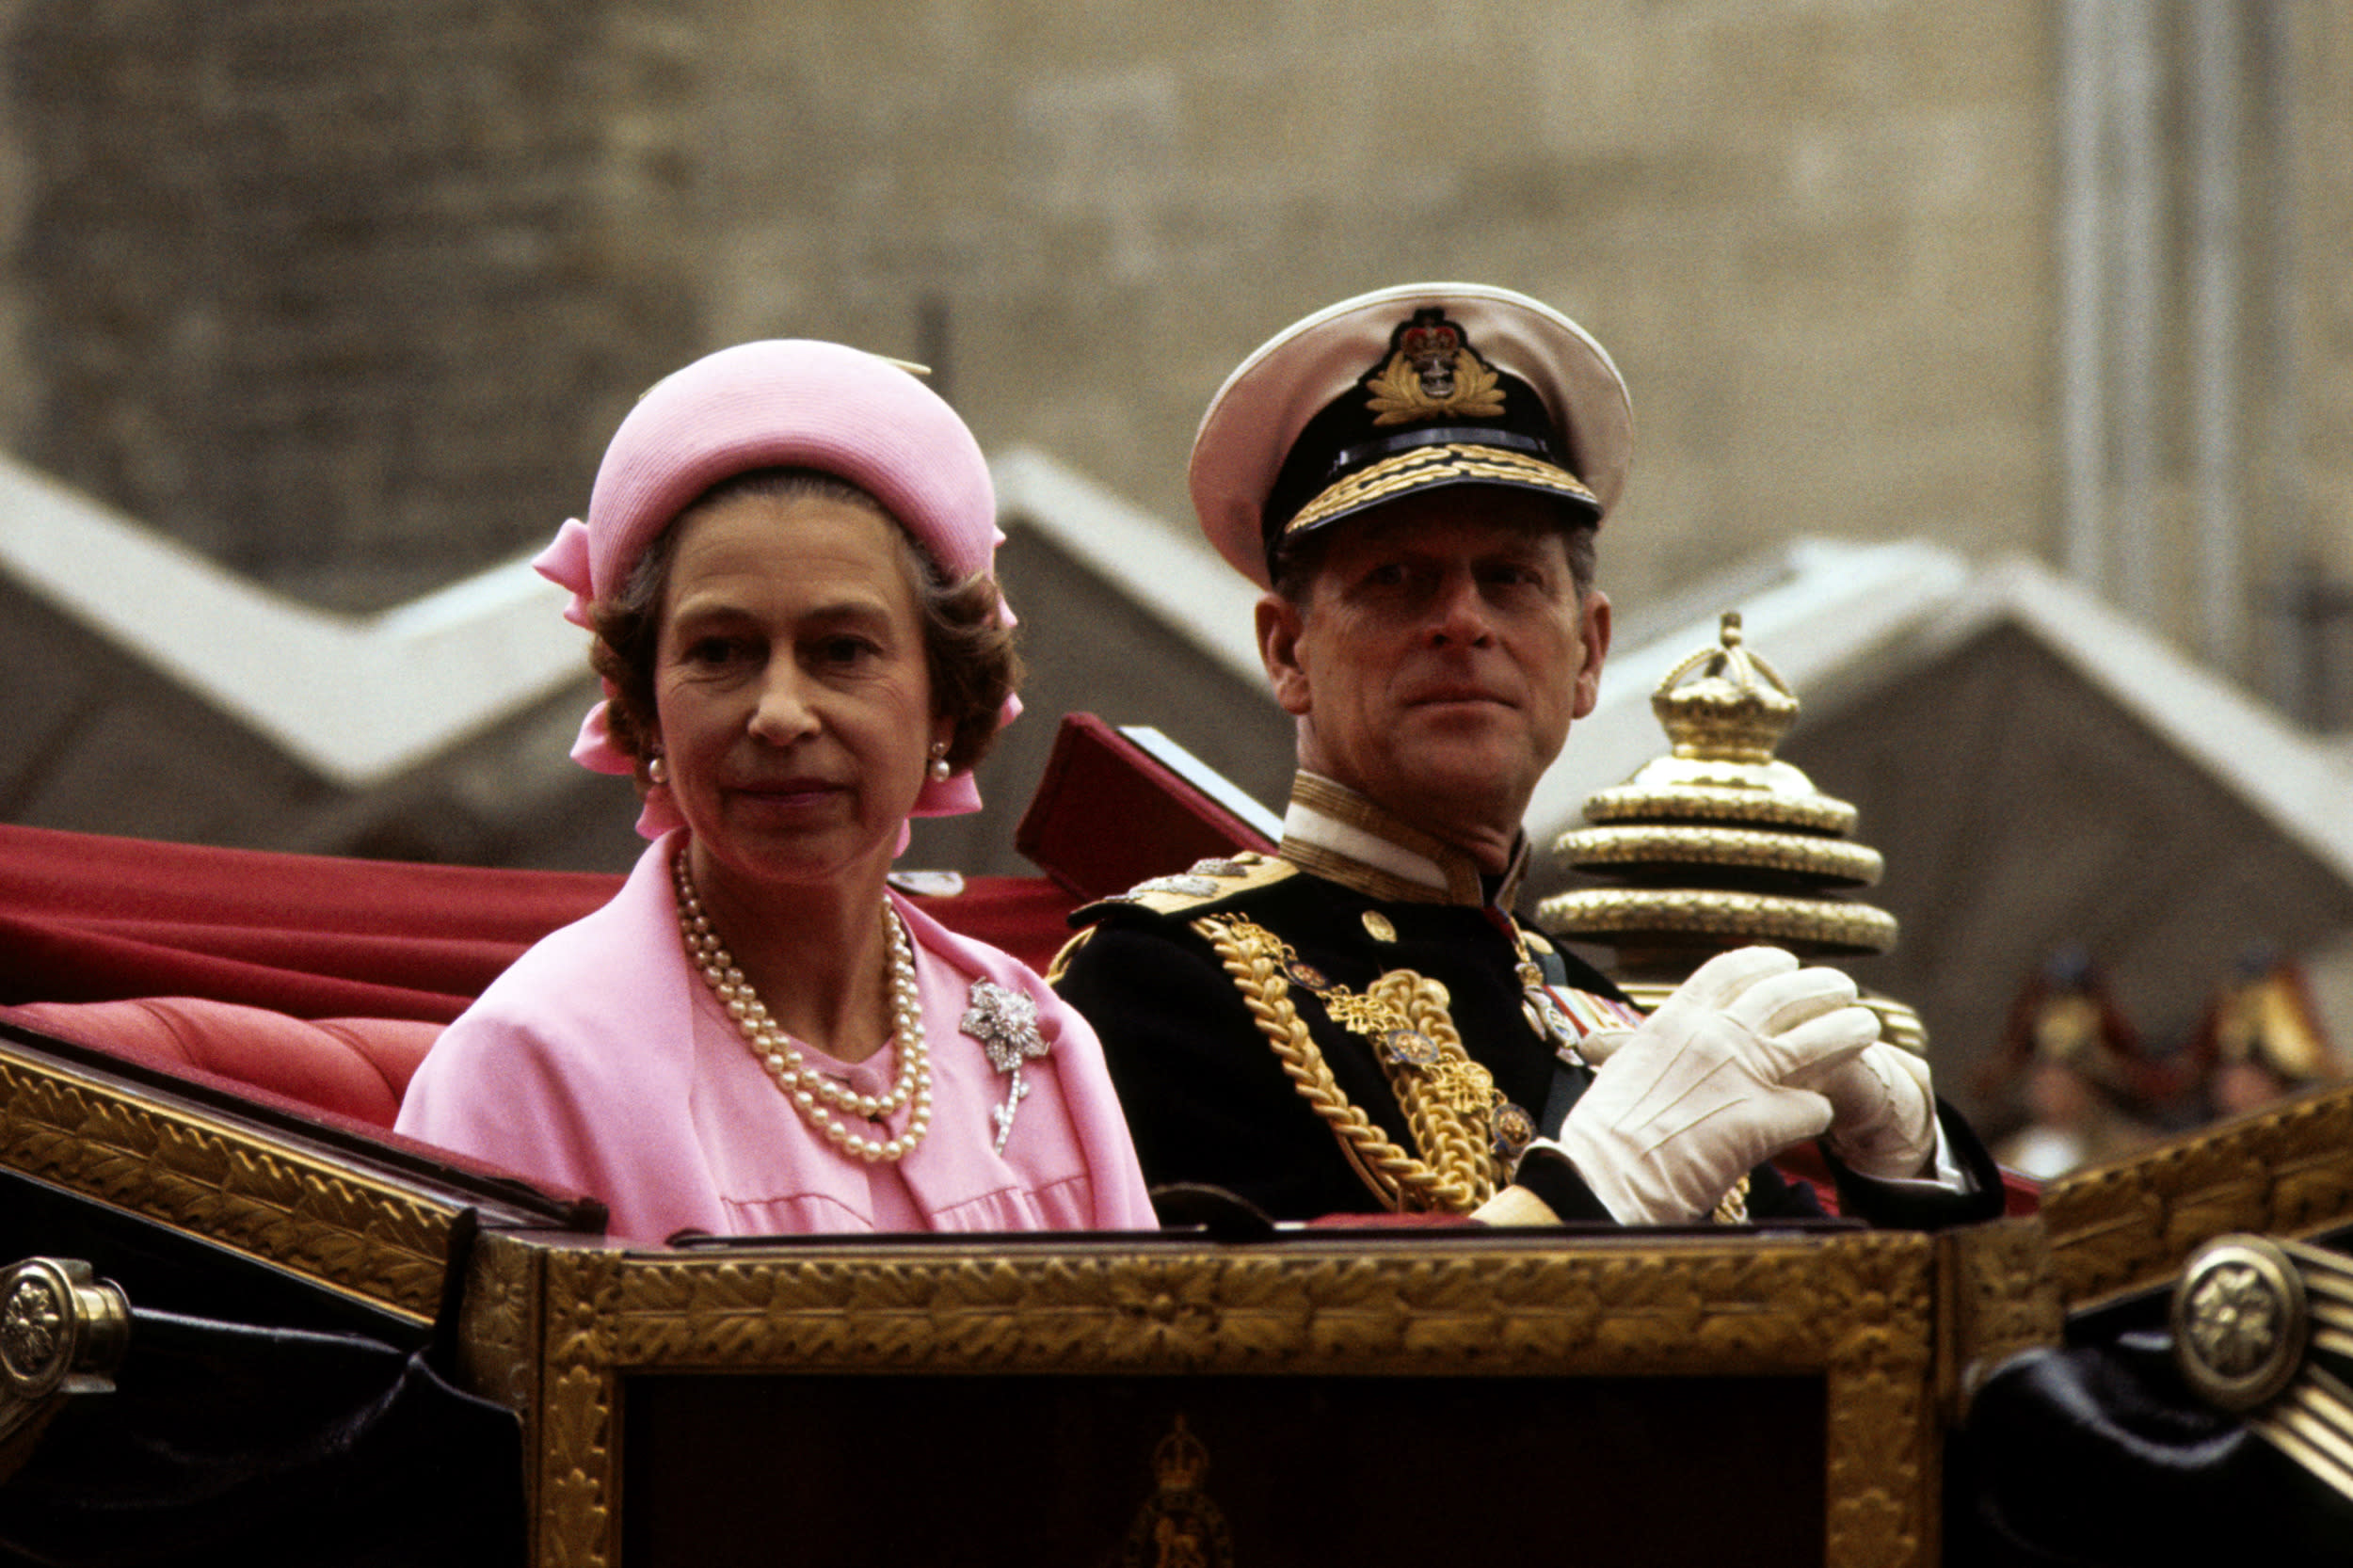 Queen Elizabeth II and the Duke of Edinburgh in the open landau as they drive on the return processional drive to Buckingham Palace after lunch at the Guildhall to celebrate the Silver Jubilee.